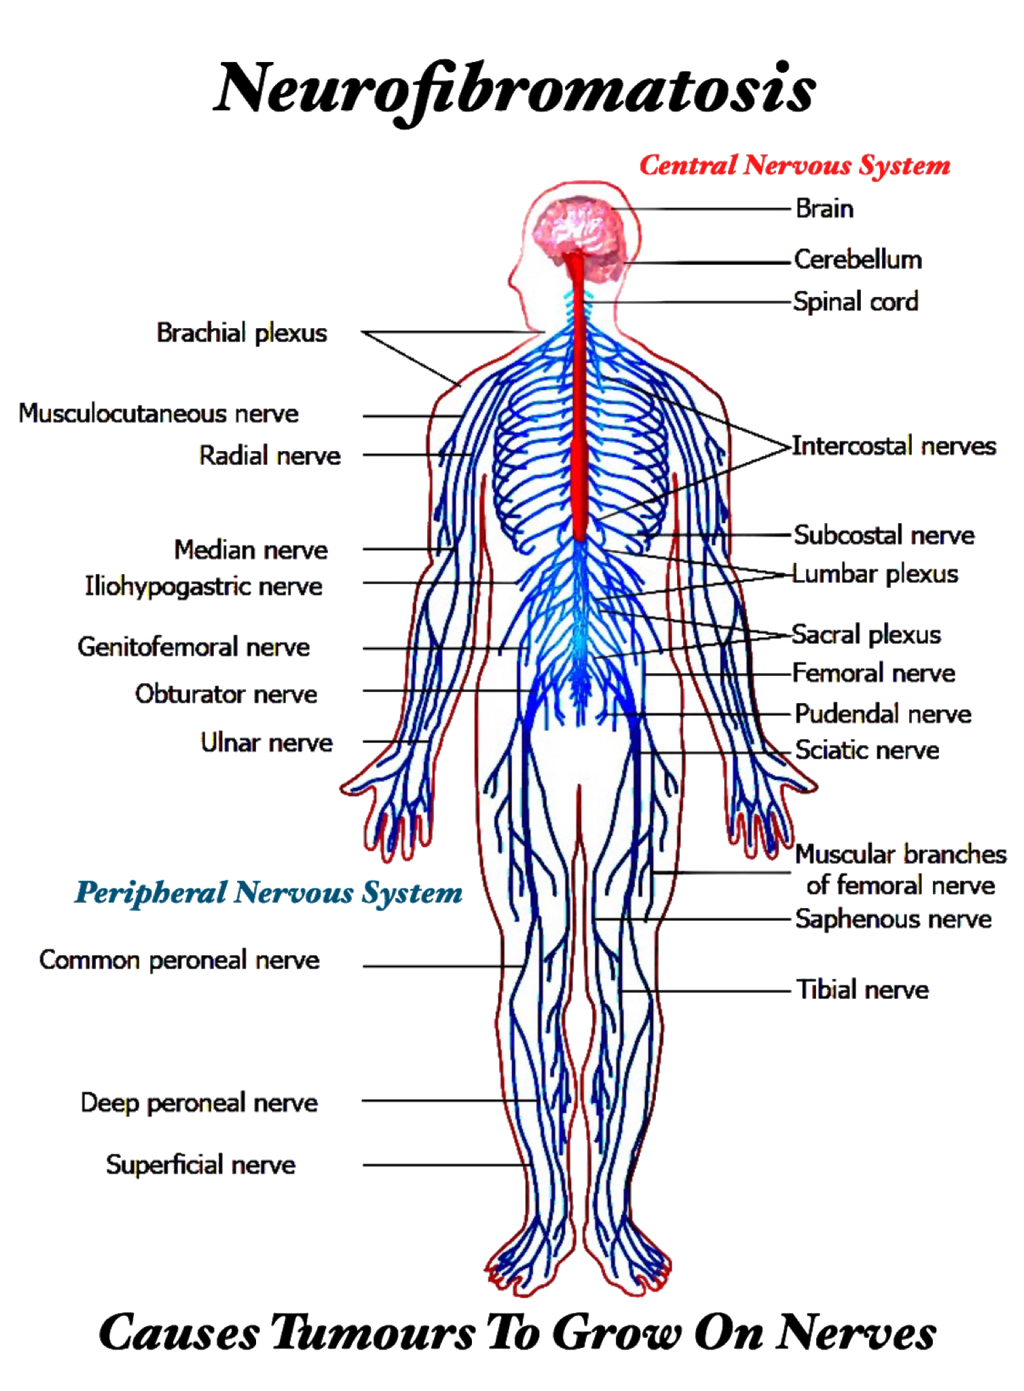 Pin By Nita Sayeed On Nf1 Neurofibromatosis Type 1 In 2020 Peripheral Nervous System Spinal Cord Nervous System